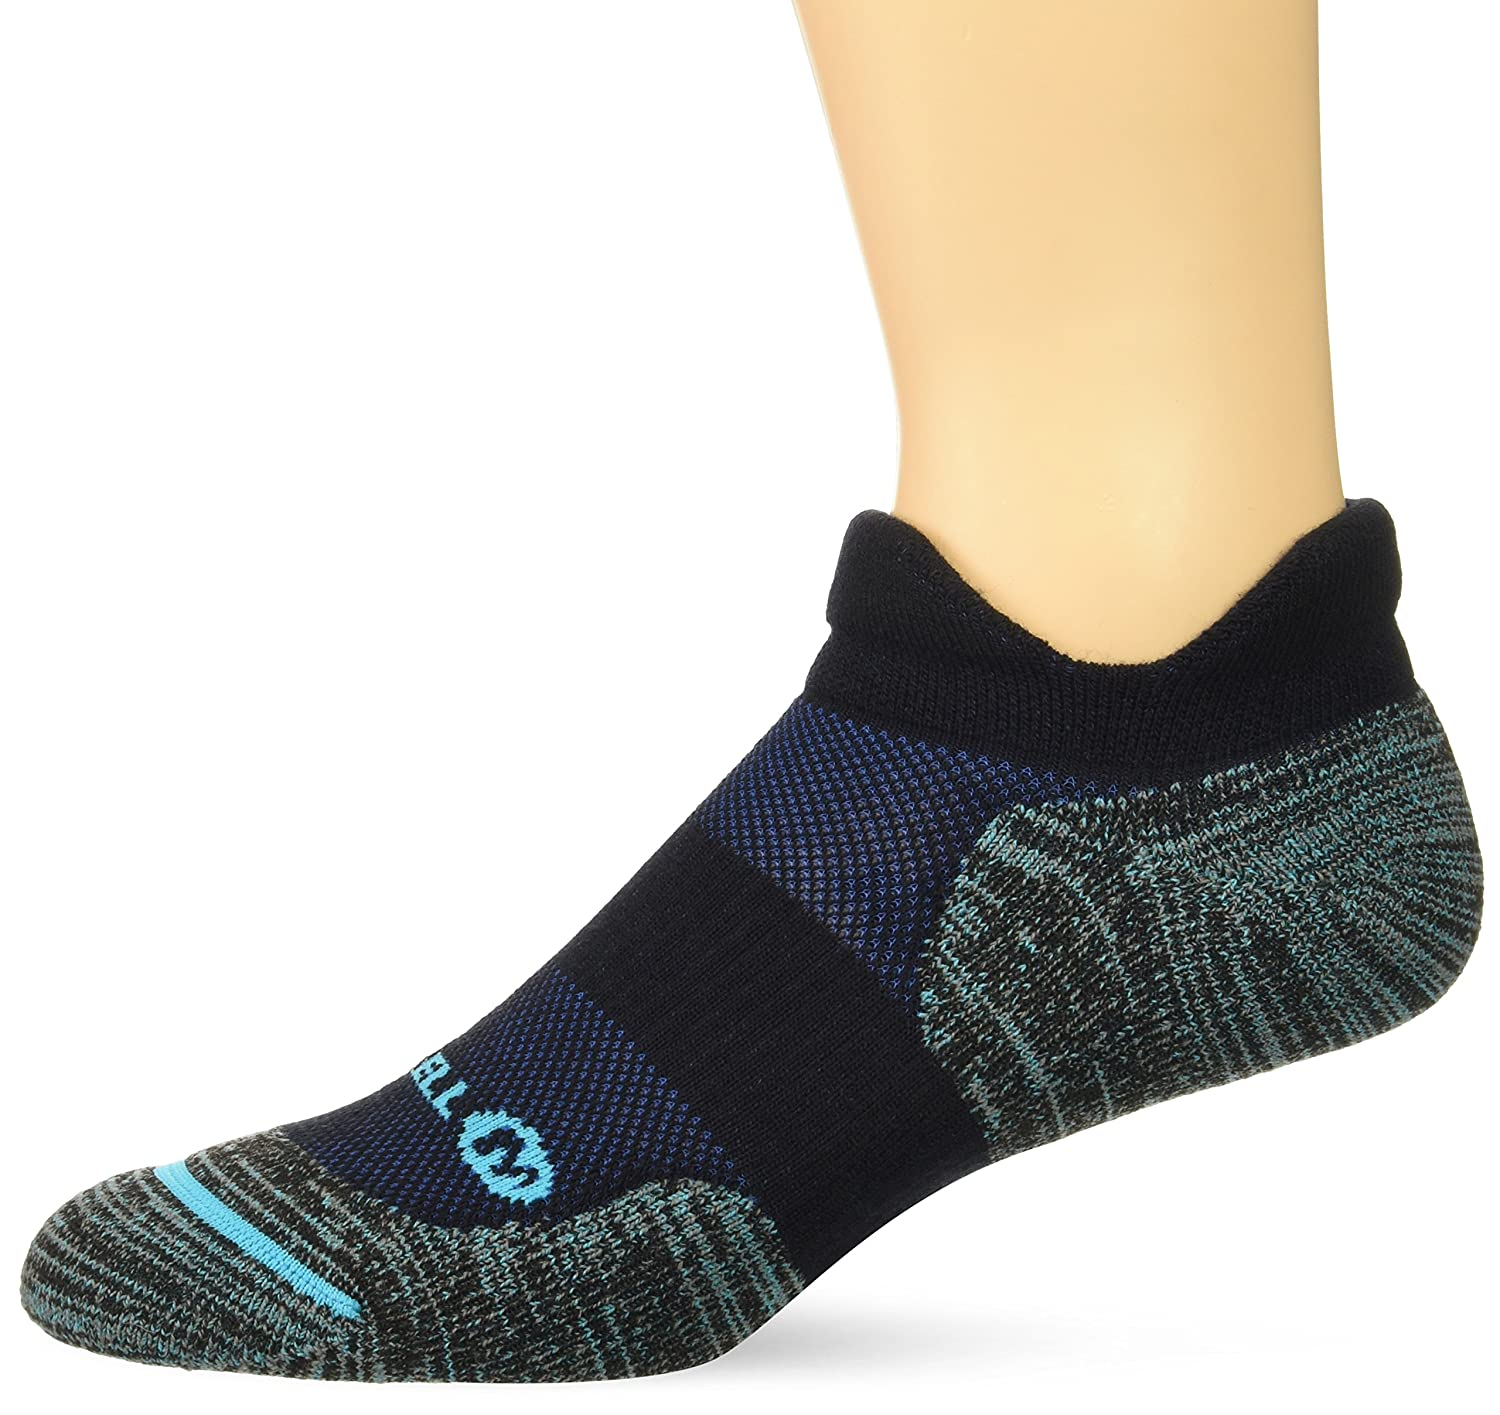 Merrell Men's Dual Tab Trail Runner Sock, Black, m/l MEMF17D001-01